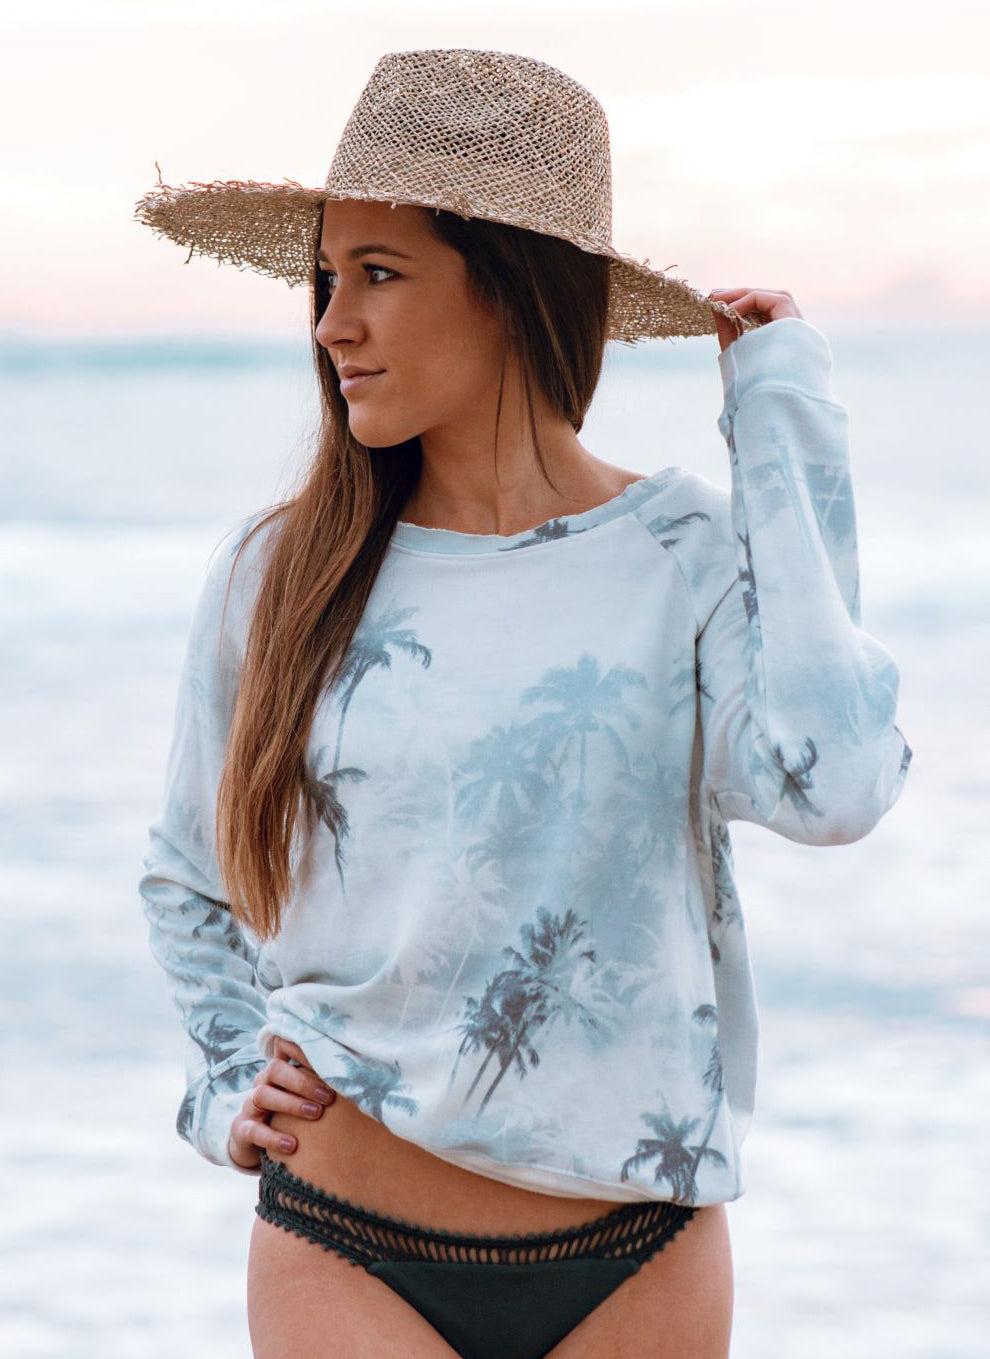 Women's Navy Palm Tree Sweatshirt, Super Soft Poly/Rayon/Spandex Blend, Size XS-L | Brokedown Clothing